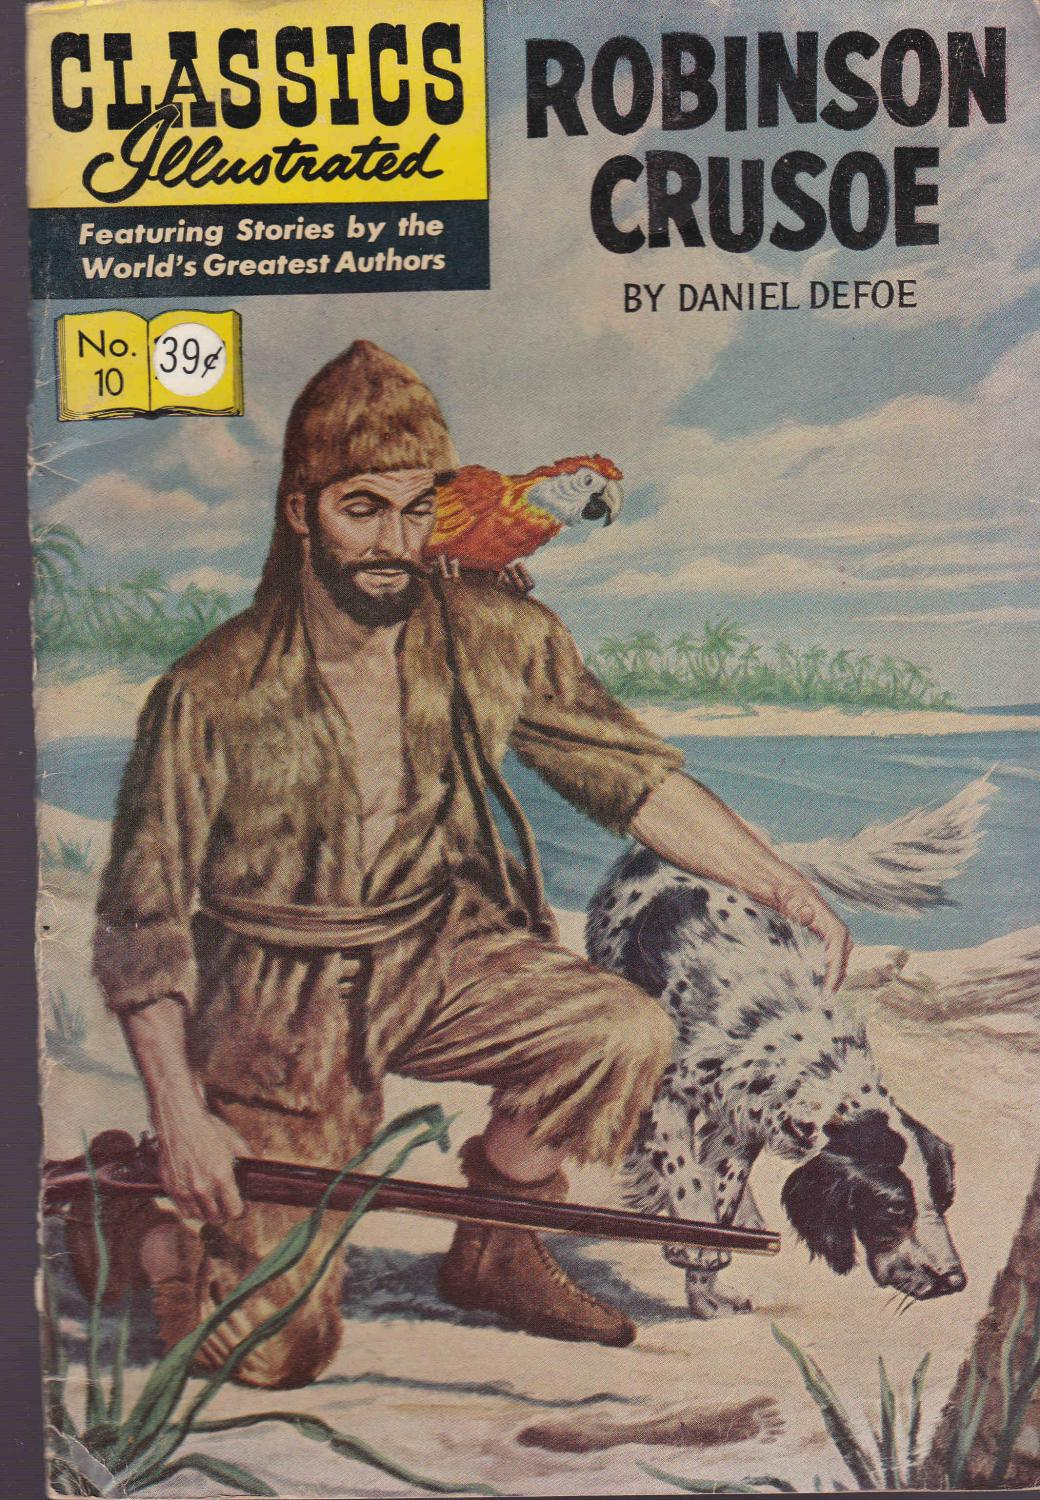 robinson crusoe critique essay Robinson crusoe was written by daniel defoe the novel was firstpublished in 1719 it tells the story of a young explorer who becomes maroonedon a robinson crusoe was a young and stubborn explorer he was extremelytall and strong his stay on the island changed him from a mean, stubborn.